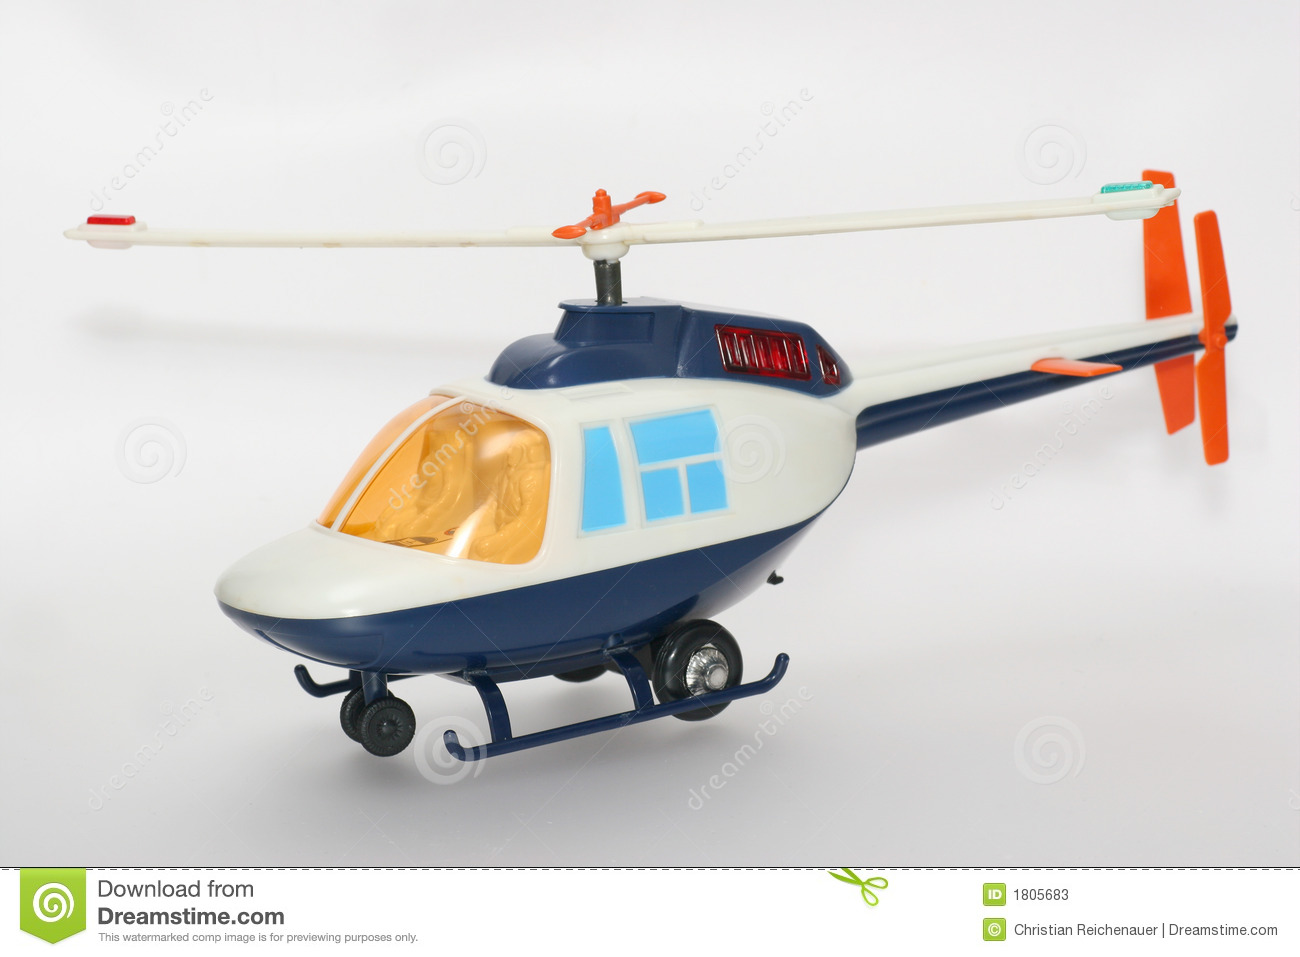 military helicopters apache with Stock Photos Toy Helicopter 80 S Image1805683 on Avatar Helicopter moreover File AH 64 Apache besides Stock Photos Toy Helicopter 80 S Image1805683 further Foto aspx together with Pakistan The Art Of Lying.